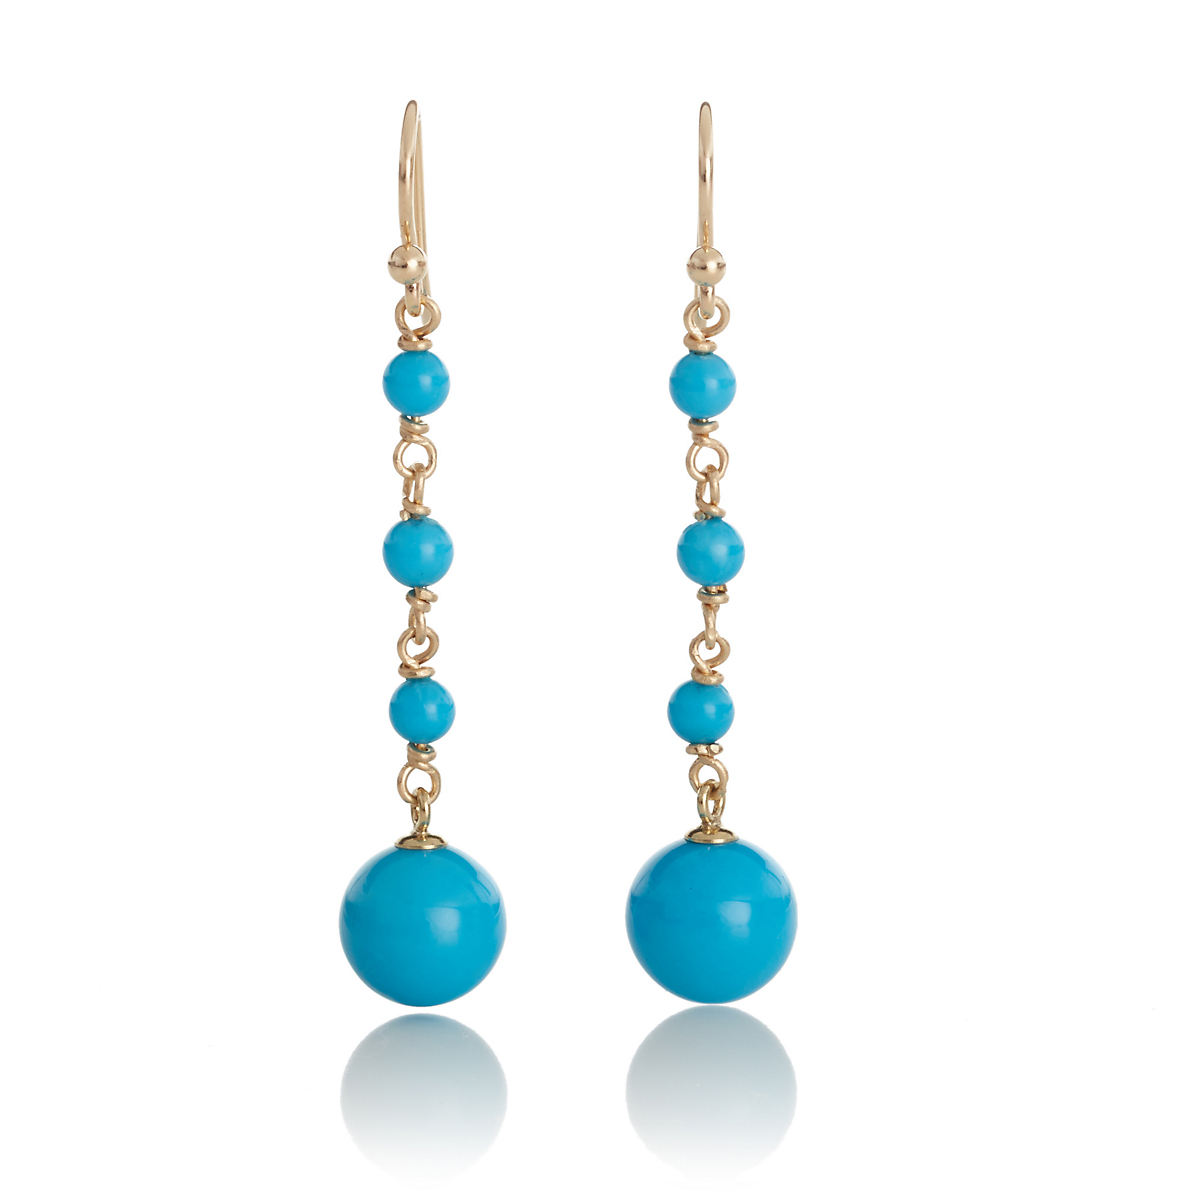 Gump's Turquoise Bead Long Drop Earrings